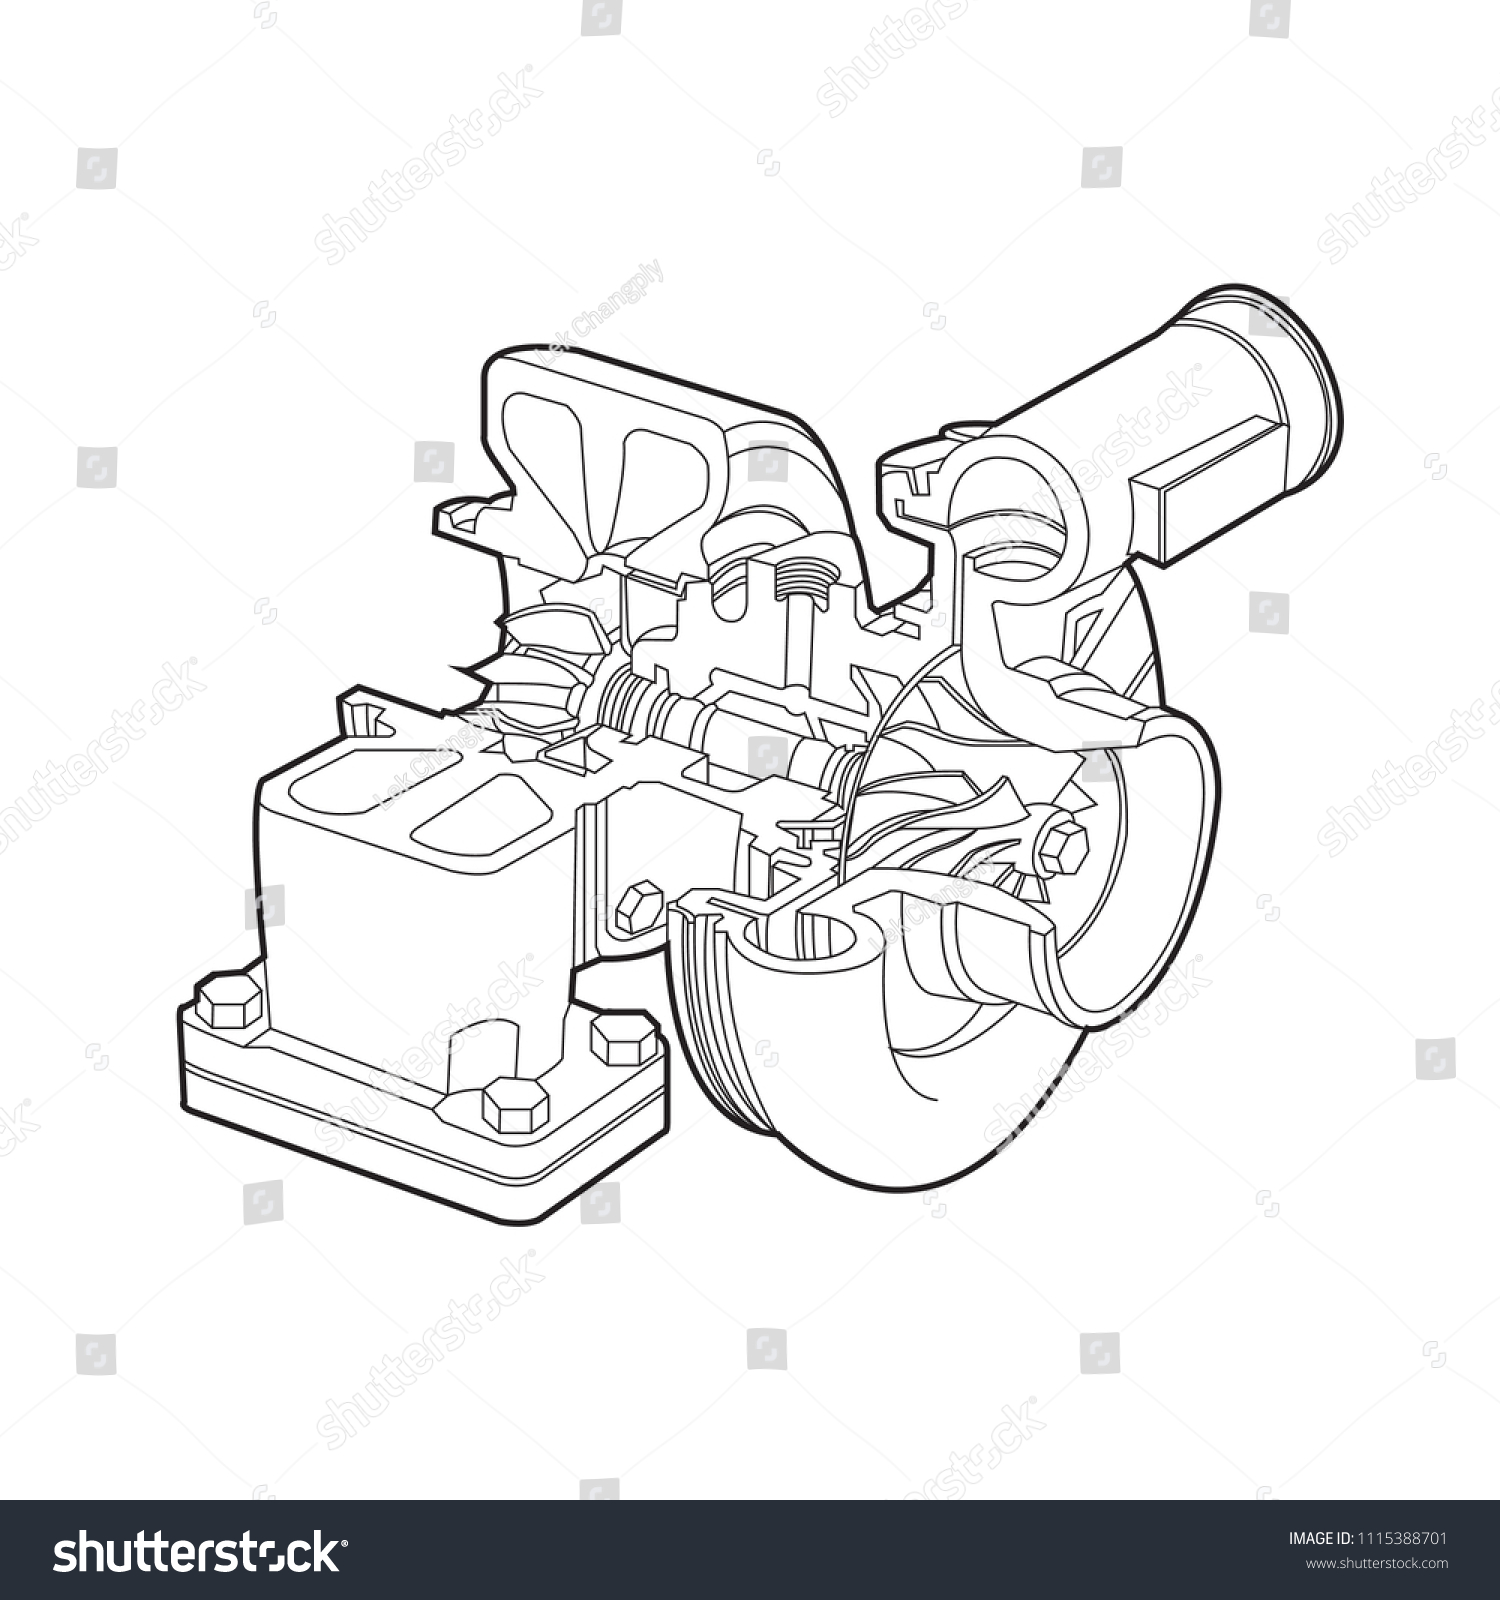 hight resolution of automobile turbocharger diagram outline vector illustrations